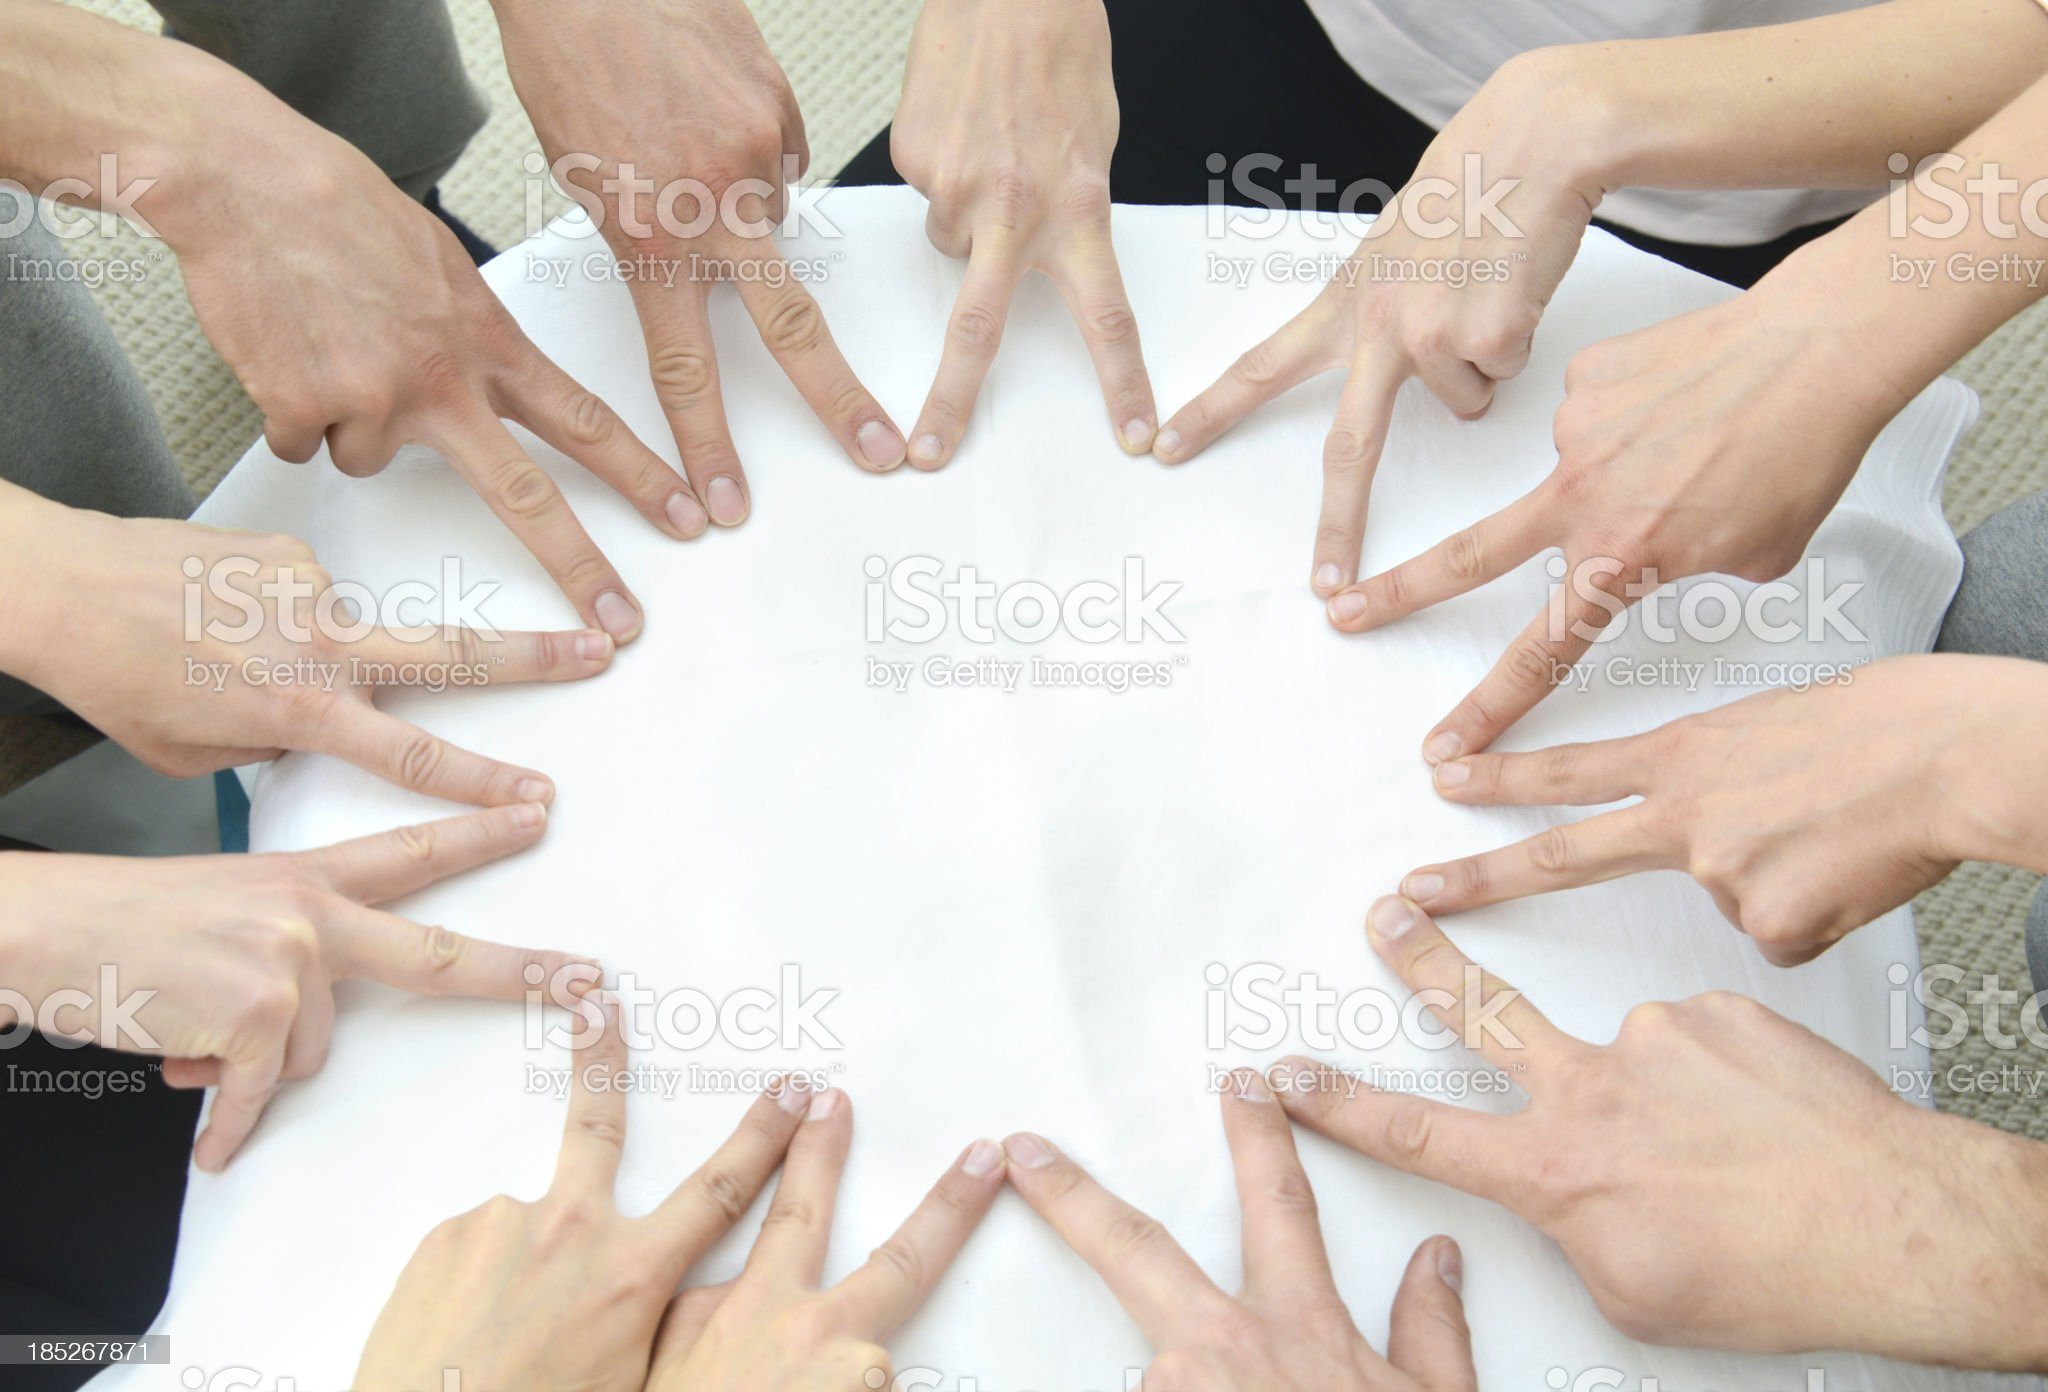 teamwork hands forming bg star with fingers Gruppe Finger Sternformation royalty-free stock photo